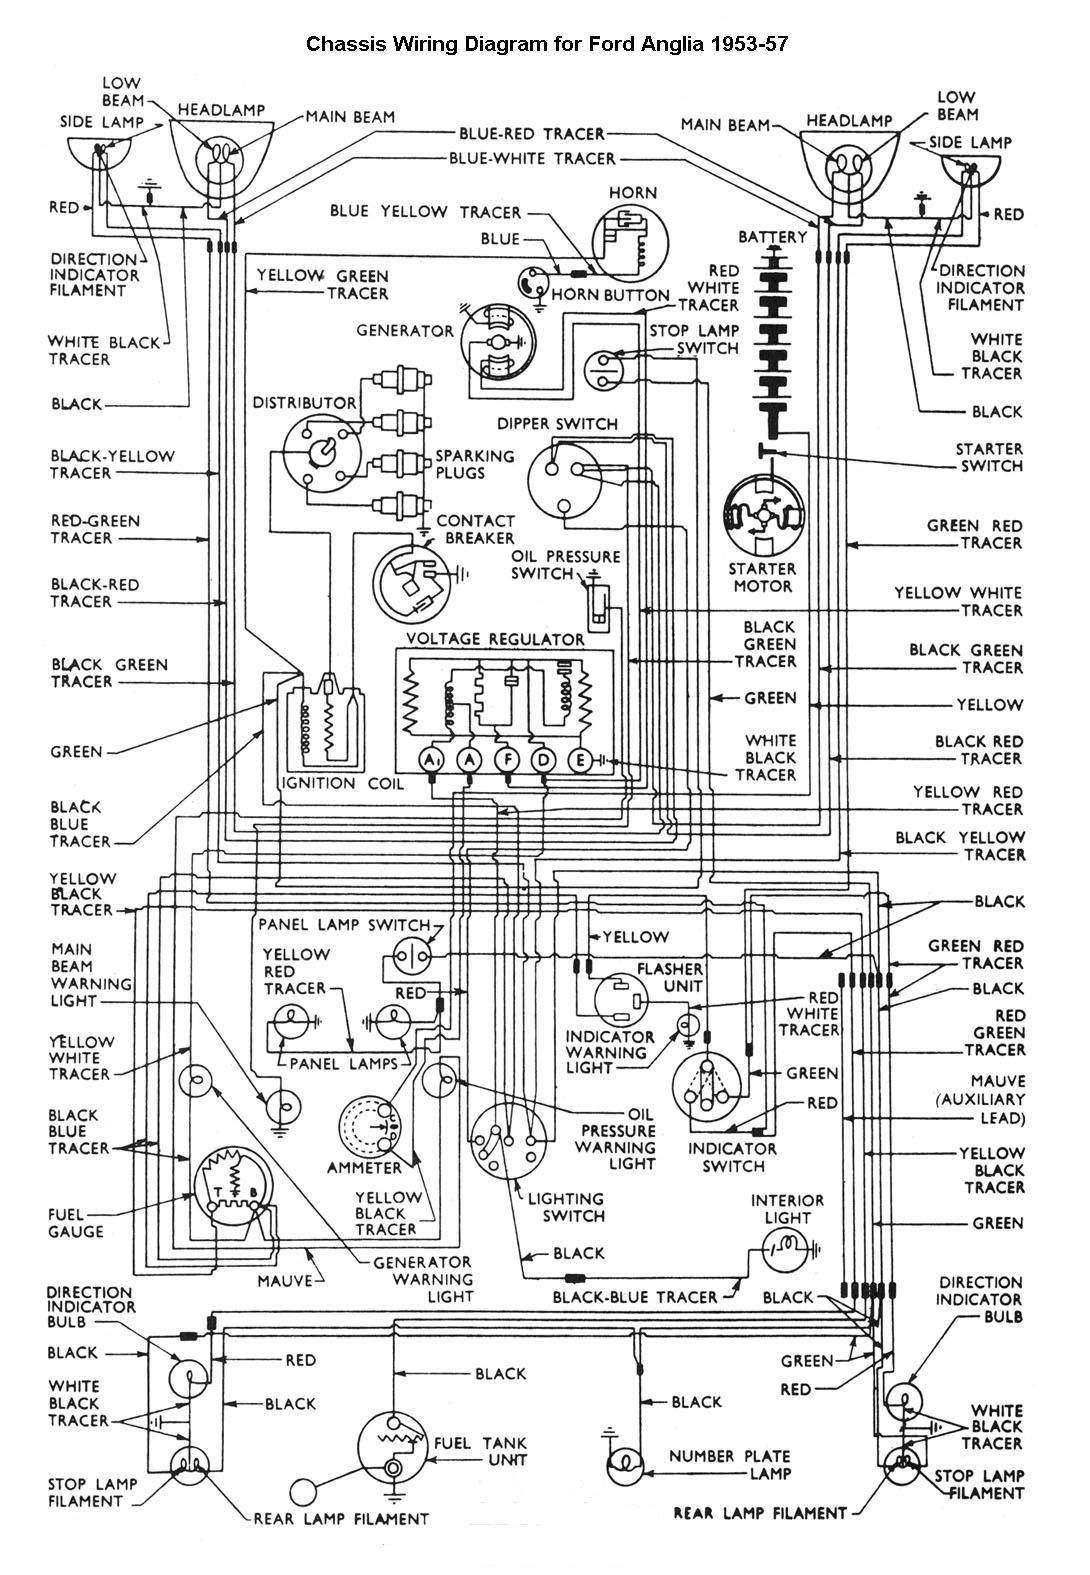 car wiring diagram | Auto and Cycles | Pinterest | Kfz, Elektro und ...